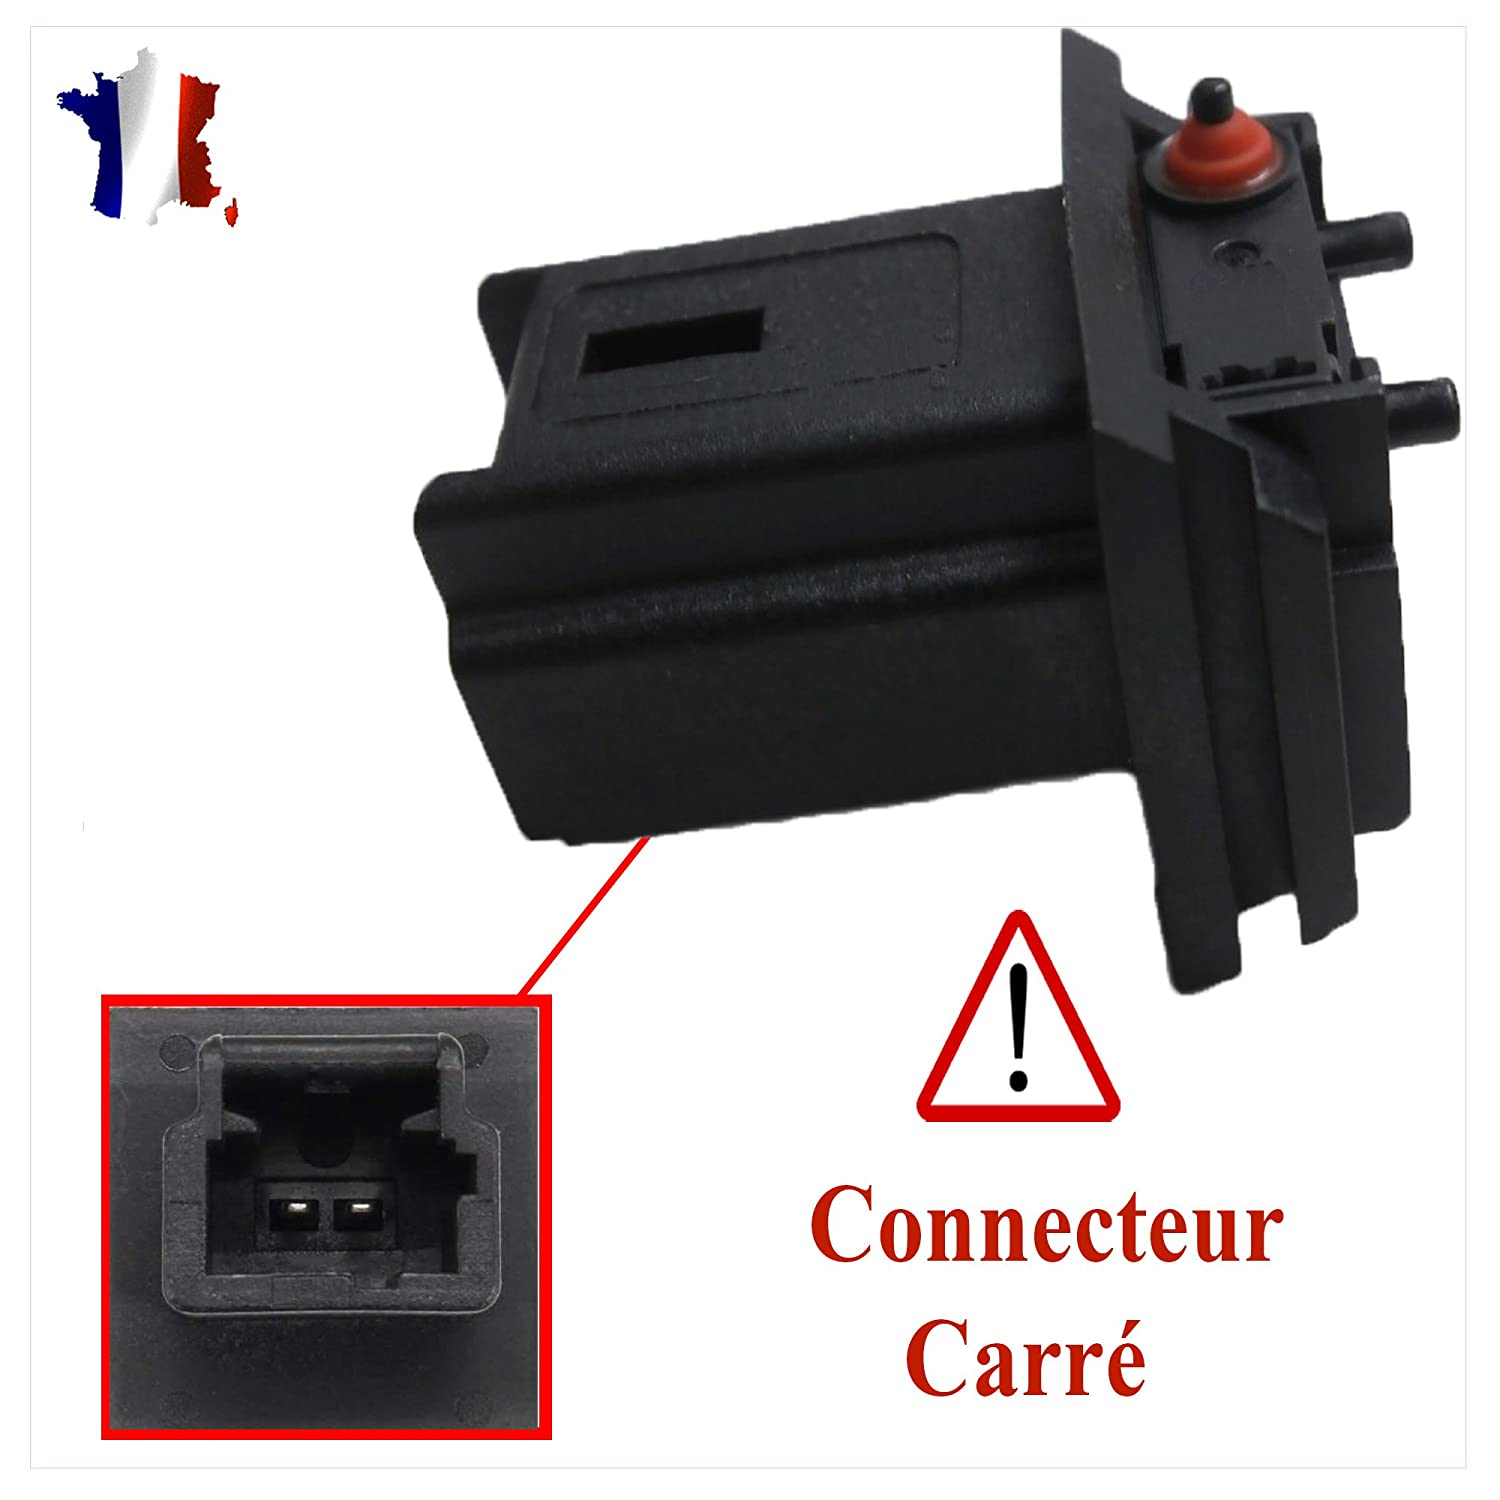 Power Switch Button Boot Tailgate Handle for Berlingo C3 ° C4 PICASSO/XSARA PICASSO 206 207 307 PARTNER 6554.v5 6554 V5 AP DISTRIBUTION